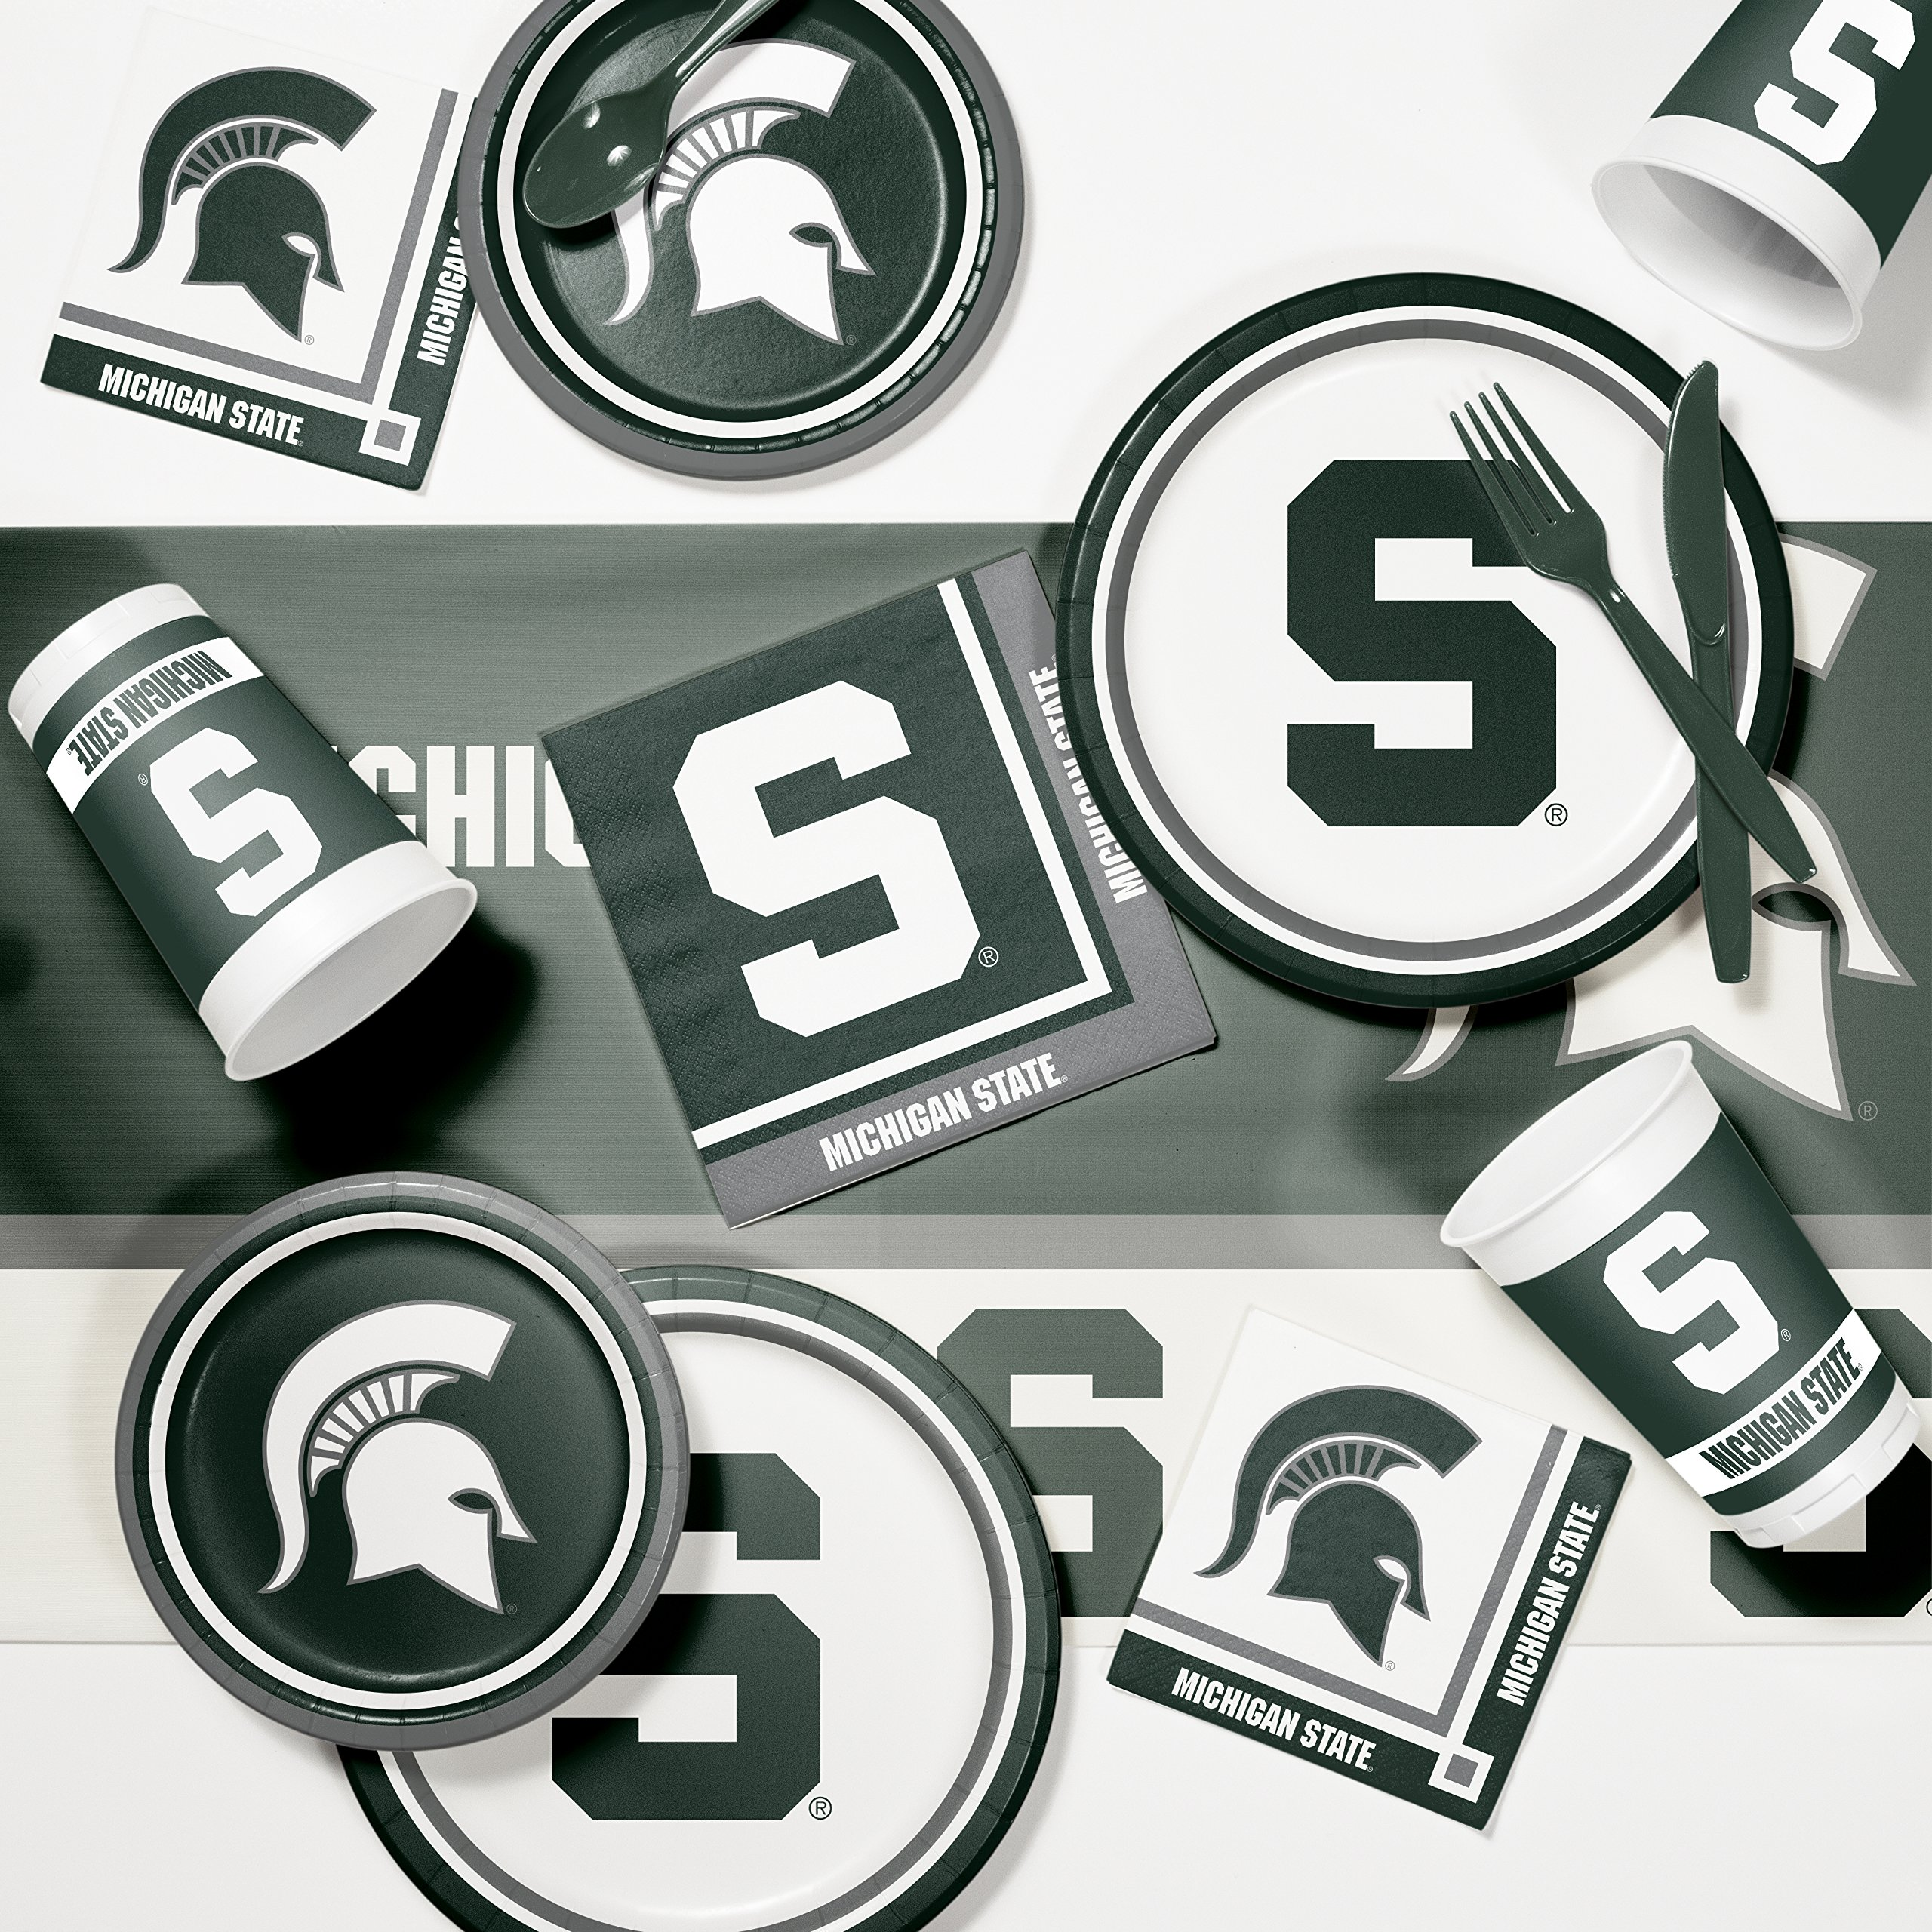 Michigan State Game Day Party Supplies Kit